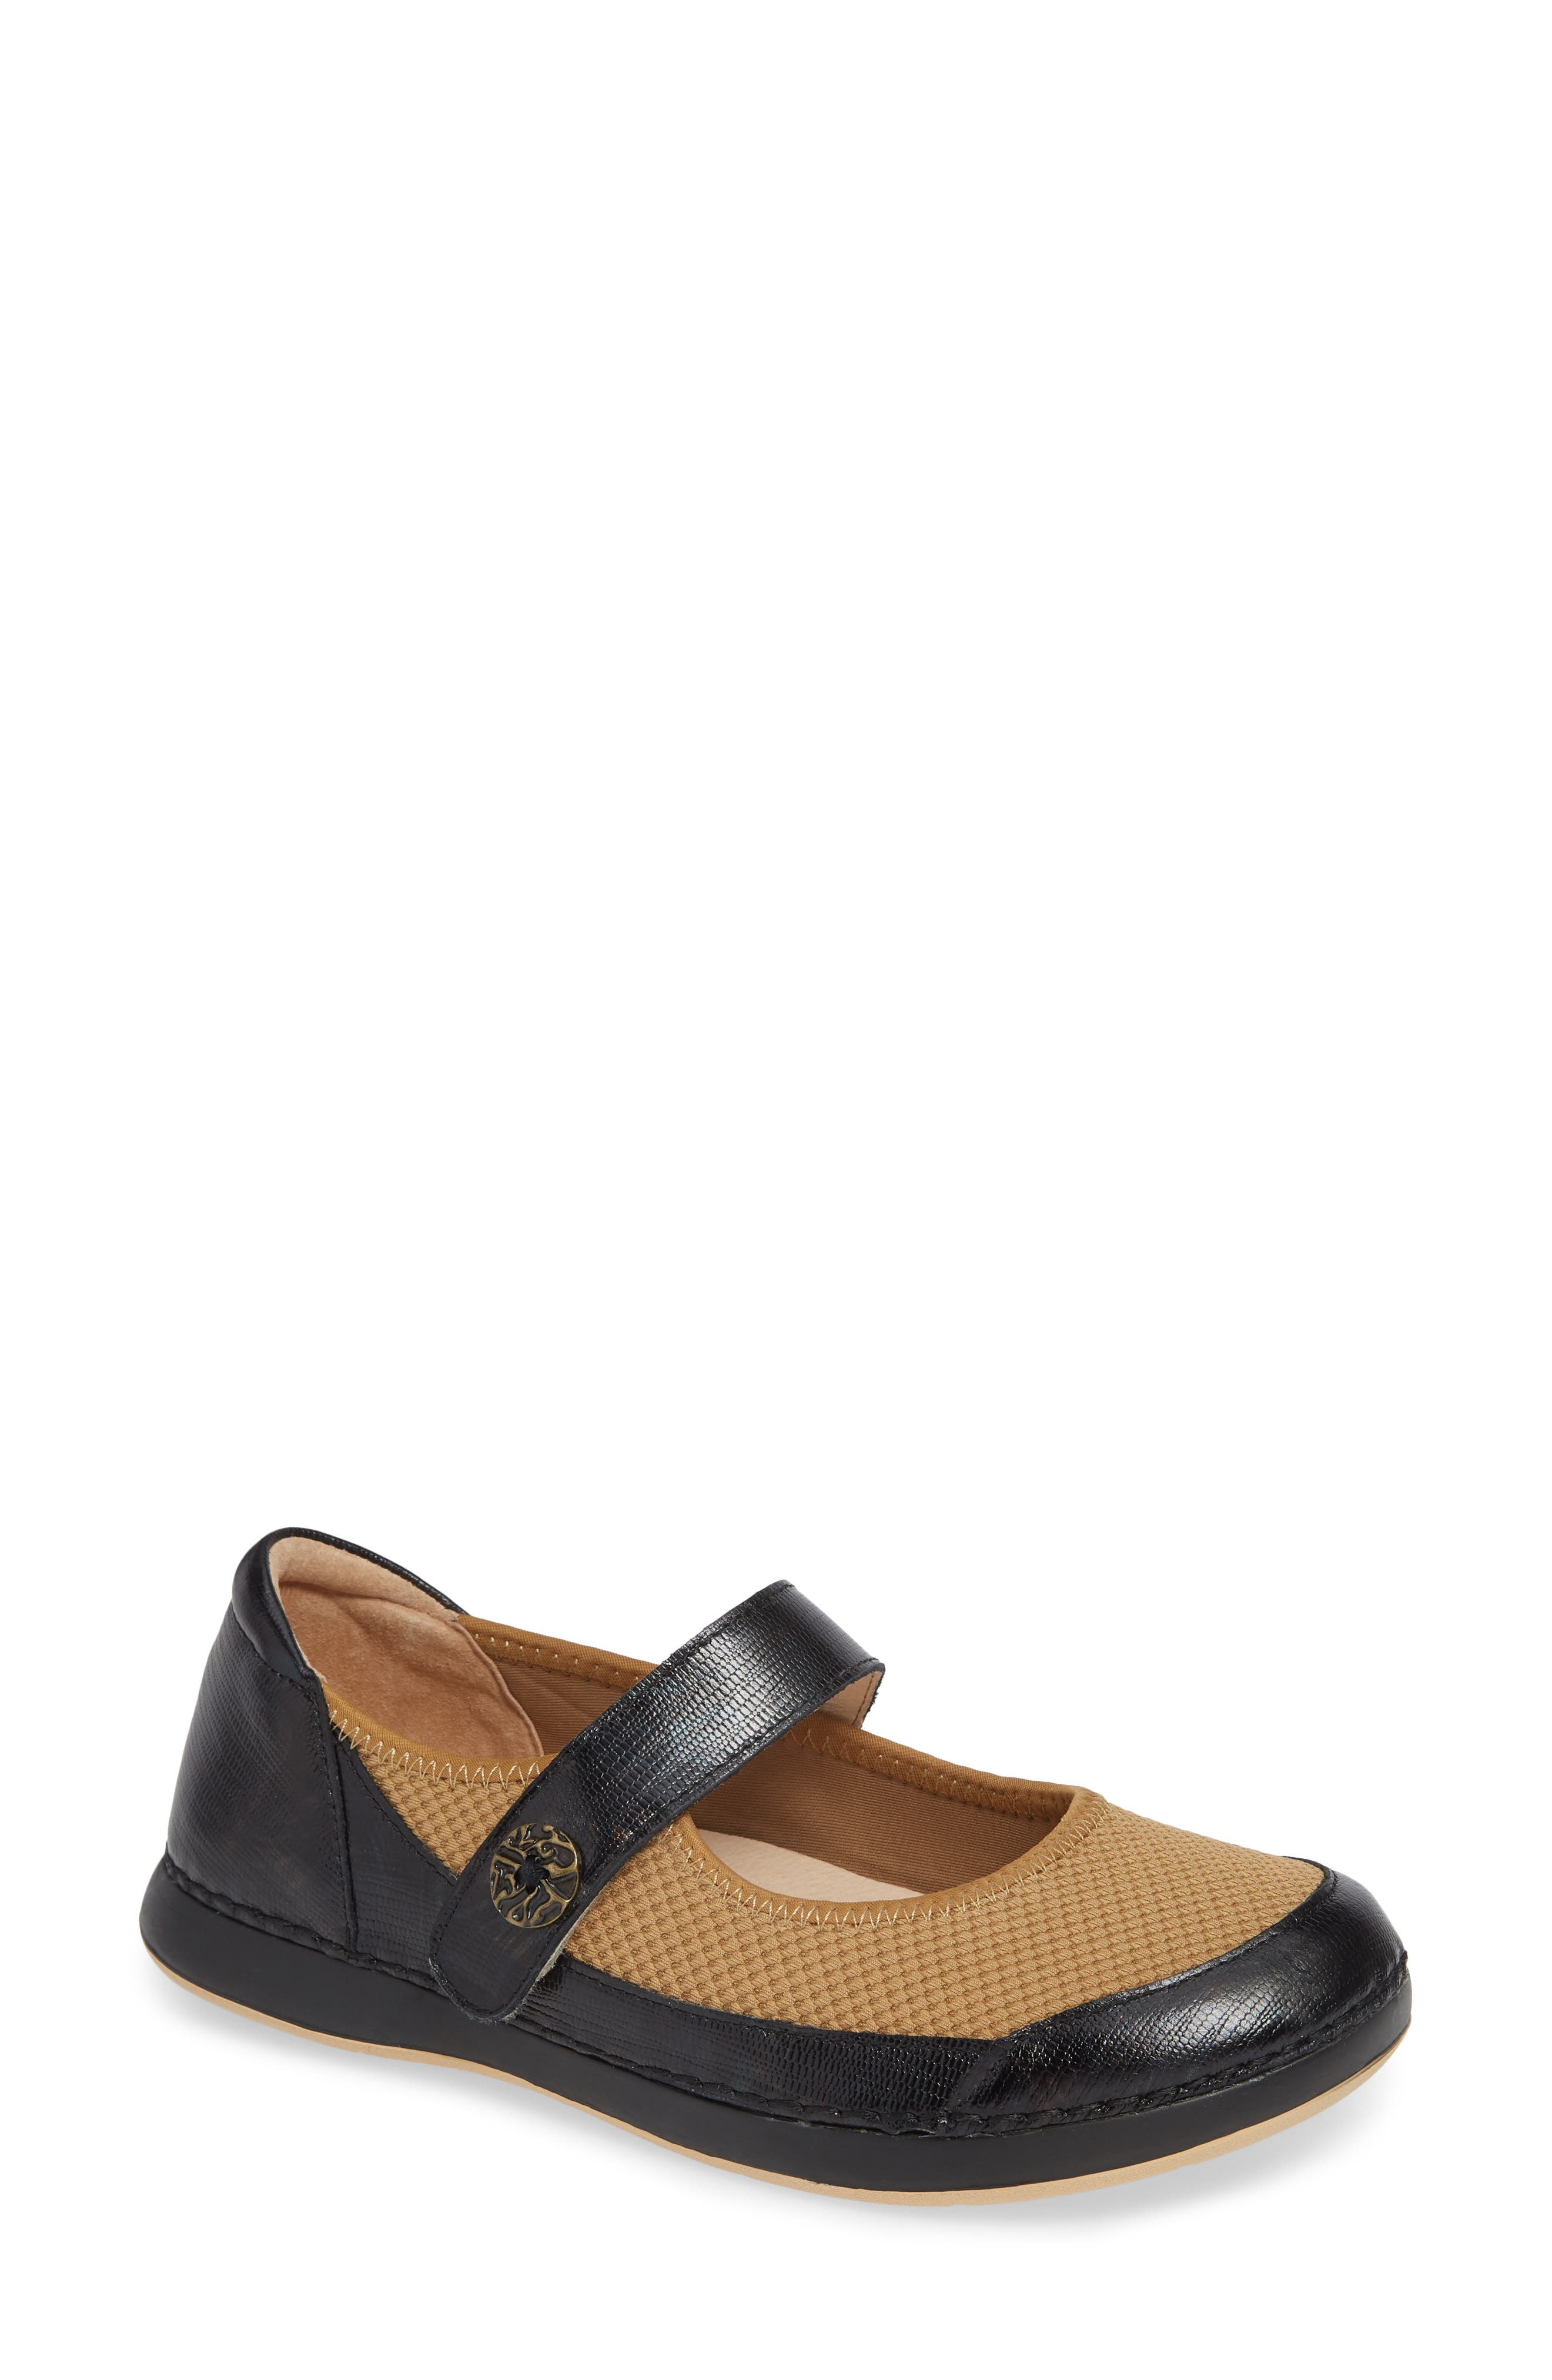 ALEGRIA Gem Mary Jane Flat, Main, color, TIDAL LEATHER